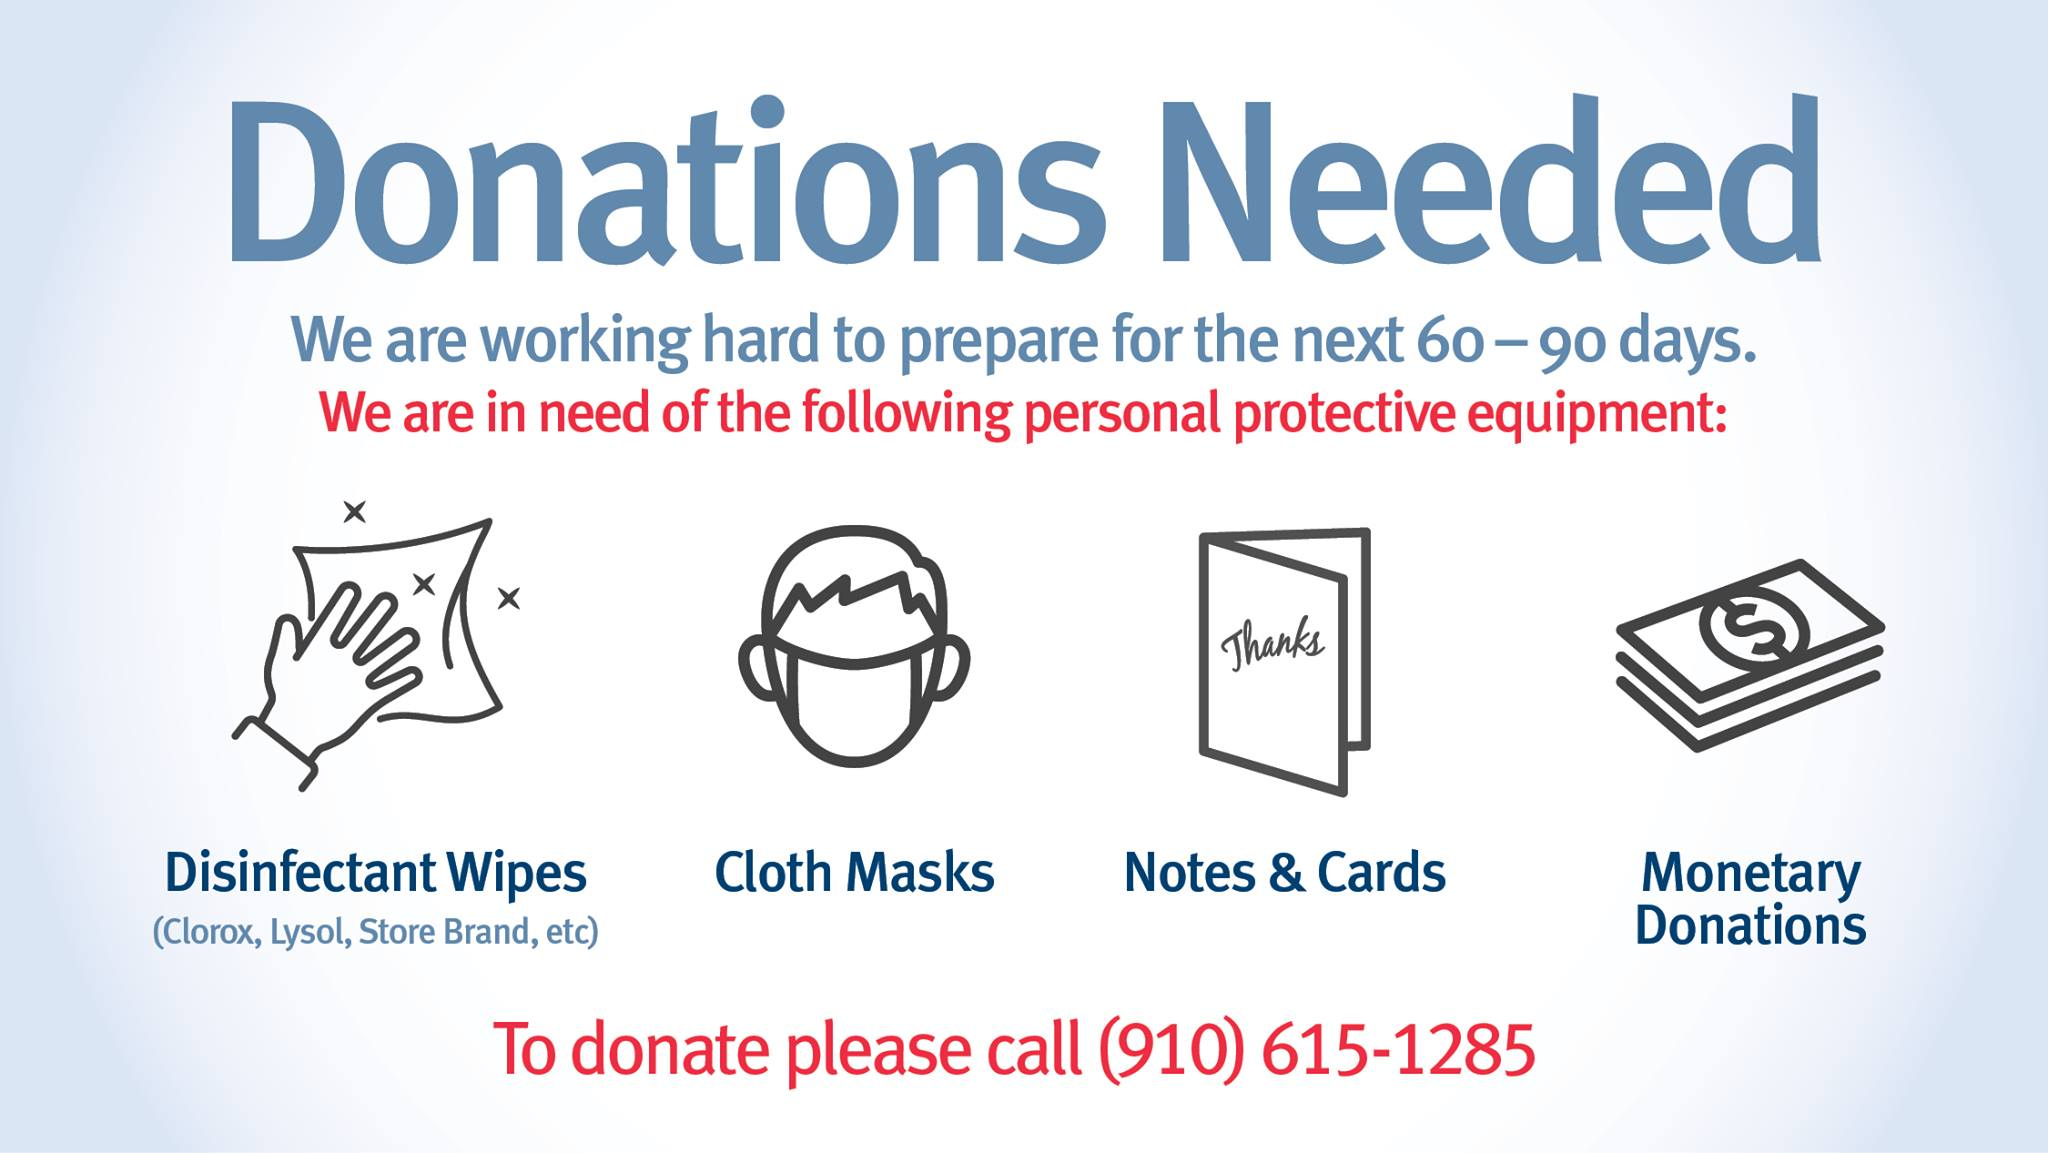 Donations needed at Cape Fear Valley